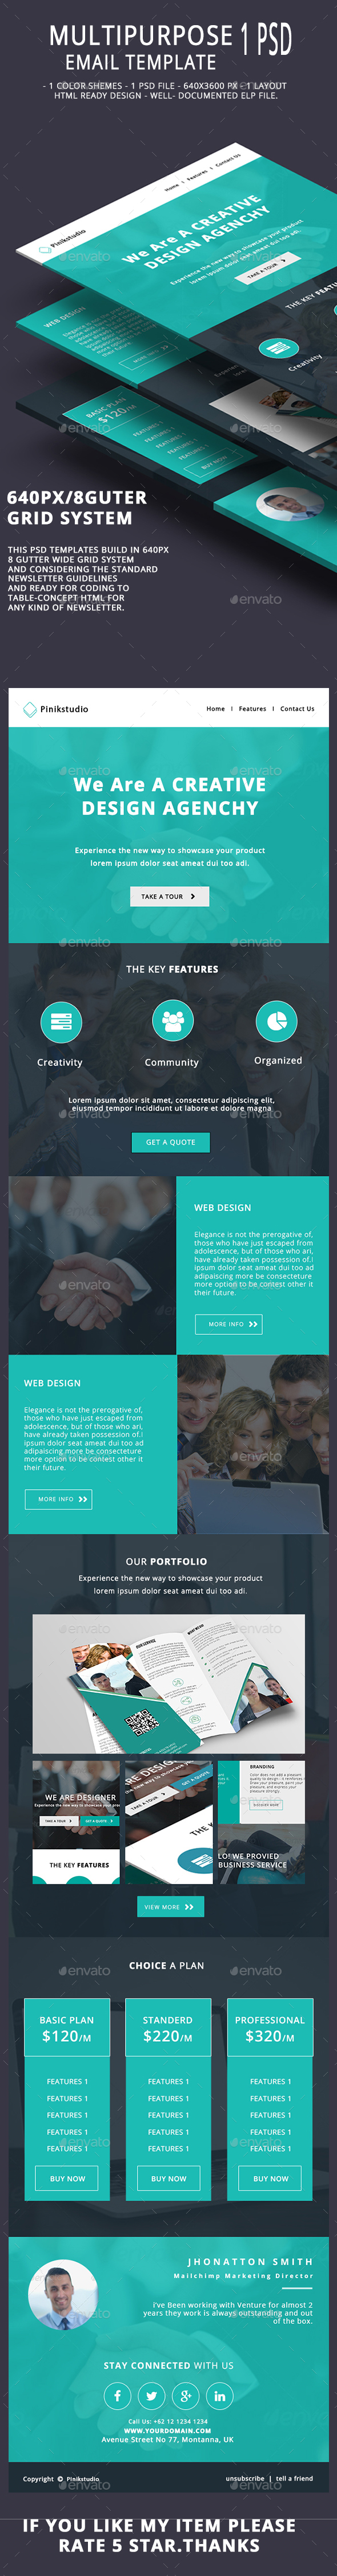 Multipurpose Email Template V11 - E-newsletters Web Elements